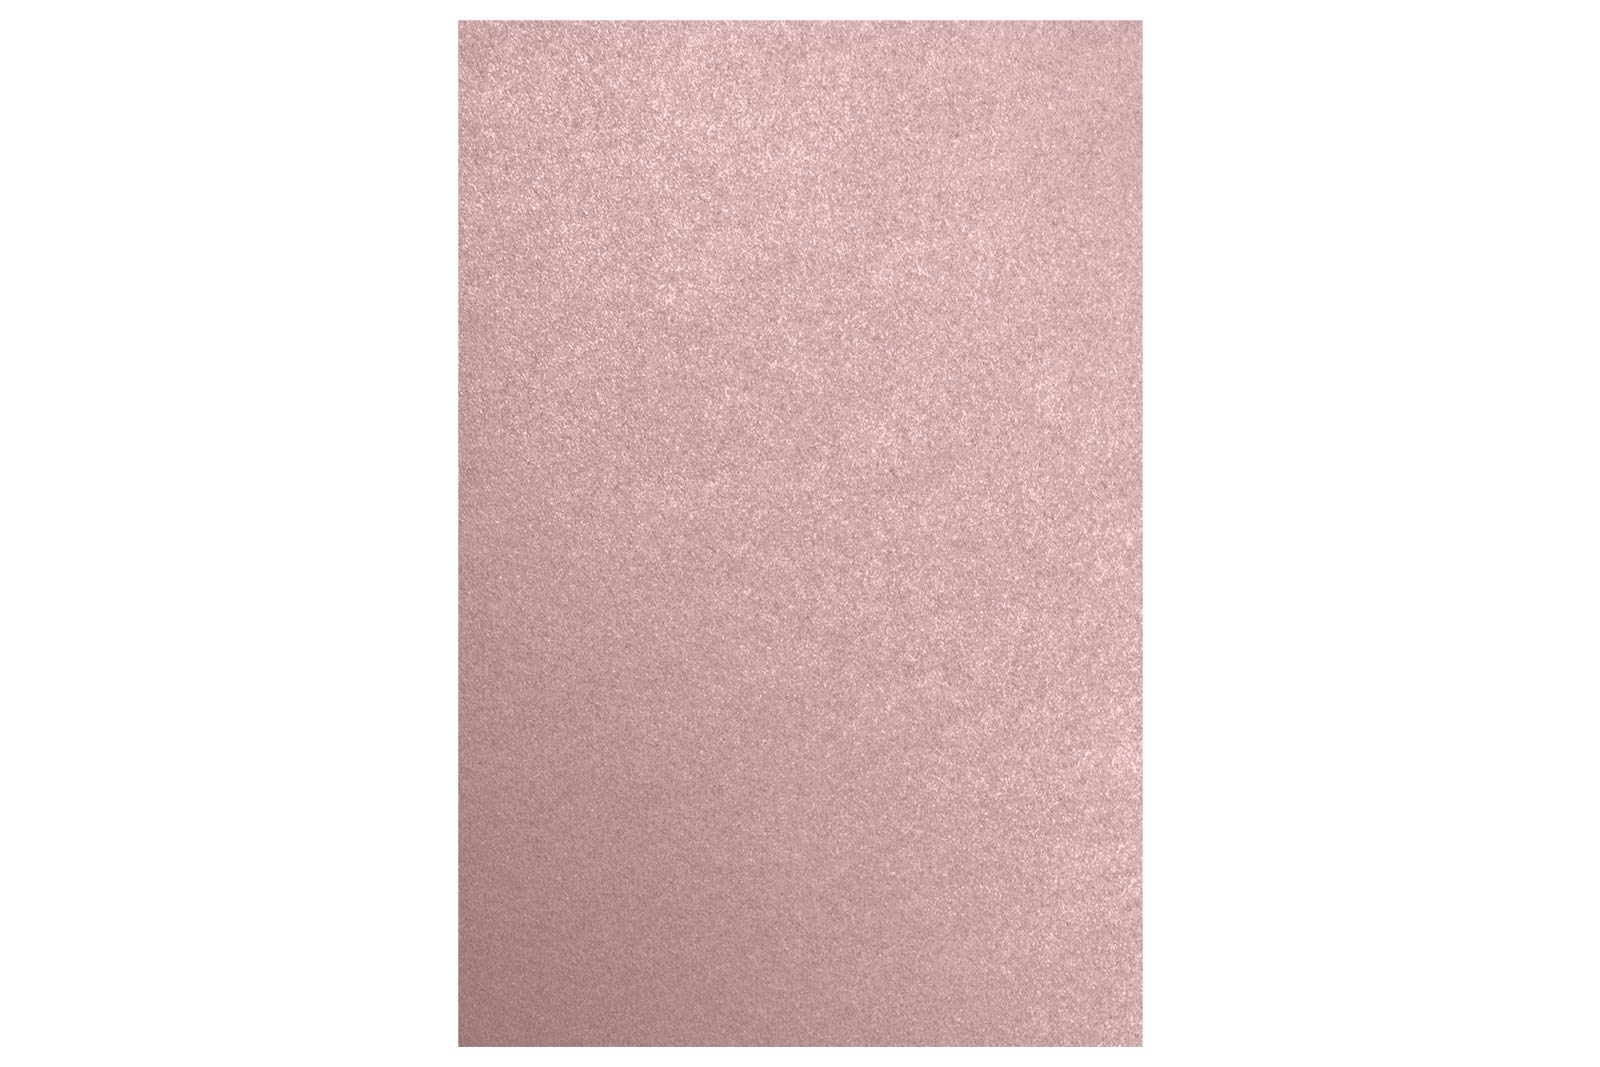 12 x 18 Cardstock - Misty Rose Metallic - Sirio Pearl (50 Qty.) | Perfect for Holiday Crafting, Invitations, Scrapbooking, Cards and so much more! | 1218-C-M203-50 by LUXPaper